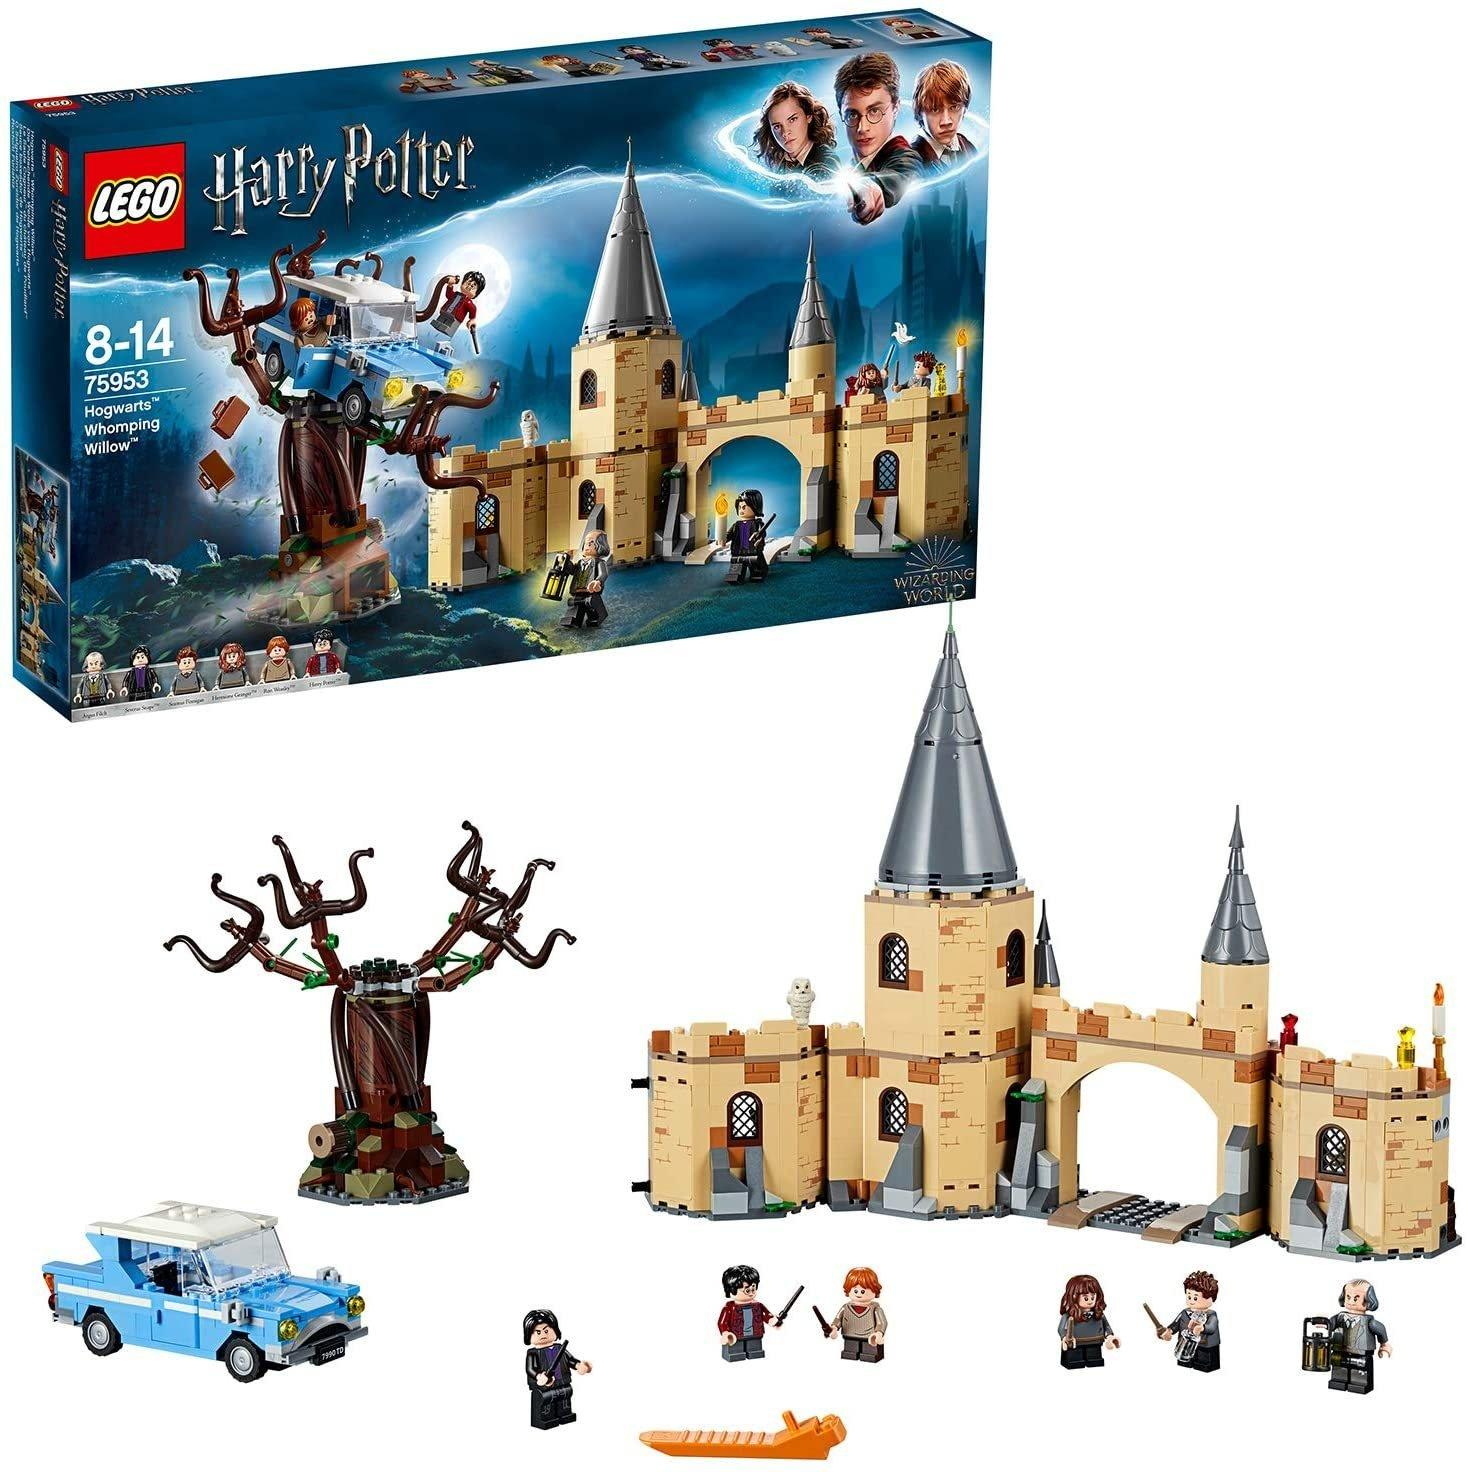 LEGO 75953 Harry Potter Hogwarts Whomping Willow Toy - TOYBOX Cyprus